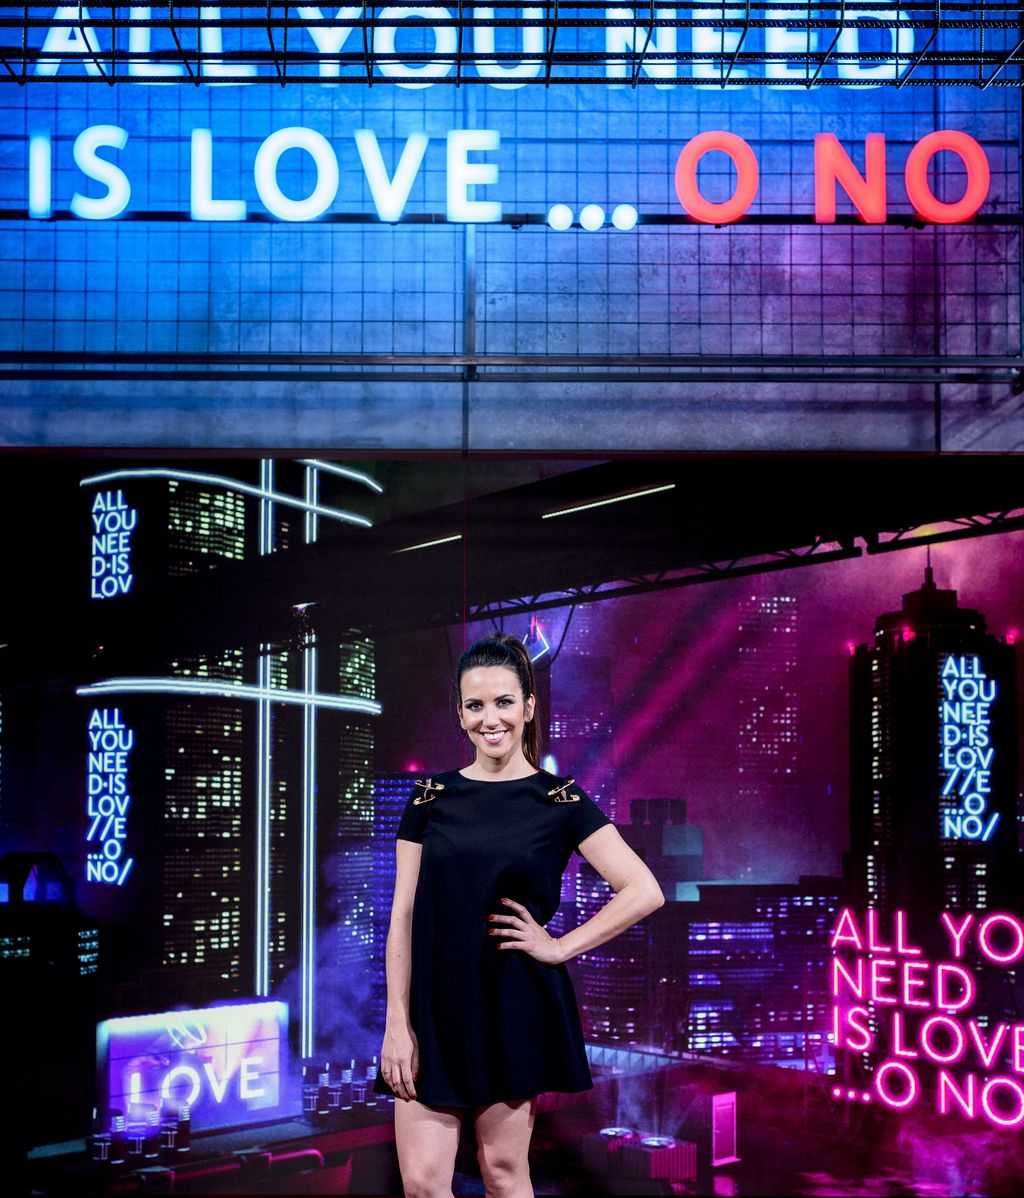 Irene Junquera colabora en 'All you need is love... o no'